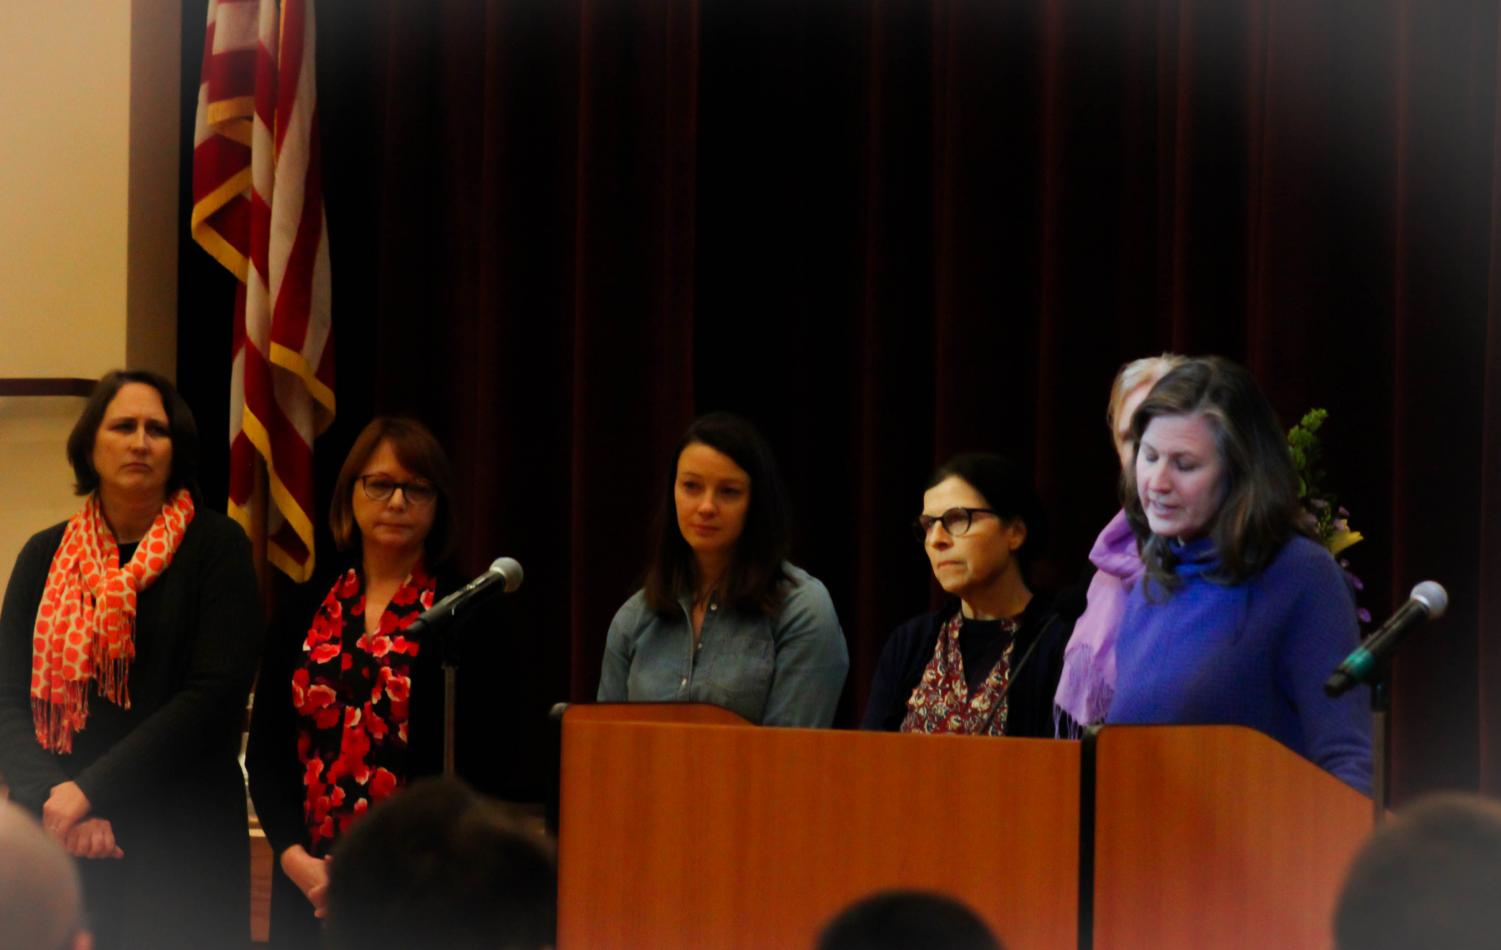 Professor Lucy Heimer and other faculty from the Early Childhood Education program remember Sloniker